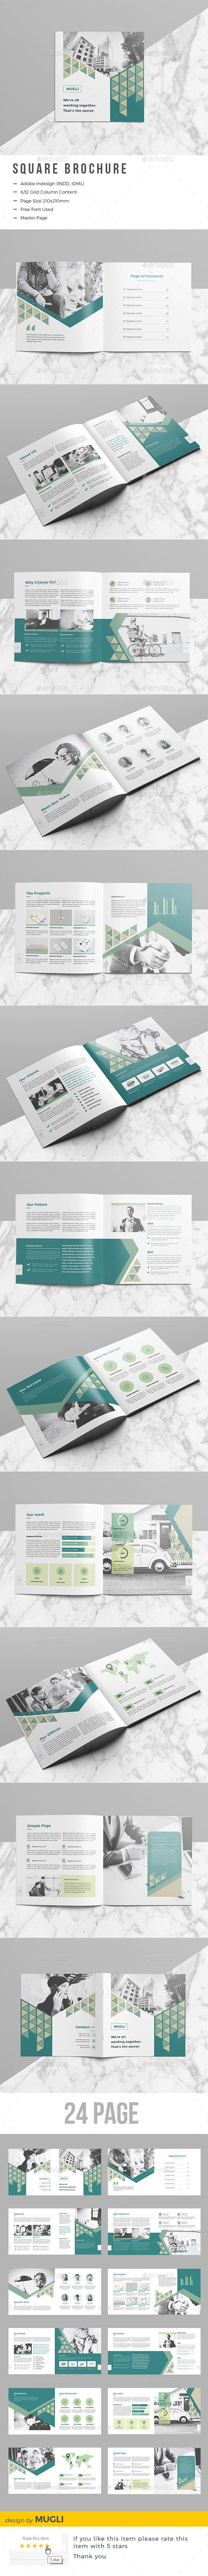 Company Square Brochure — InDesign INDD #red #annual report • Download ➝ https://graphicriver.net/item/company-square-brochure/19595419?ref=pxcr